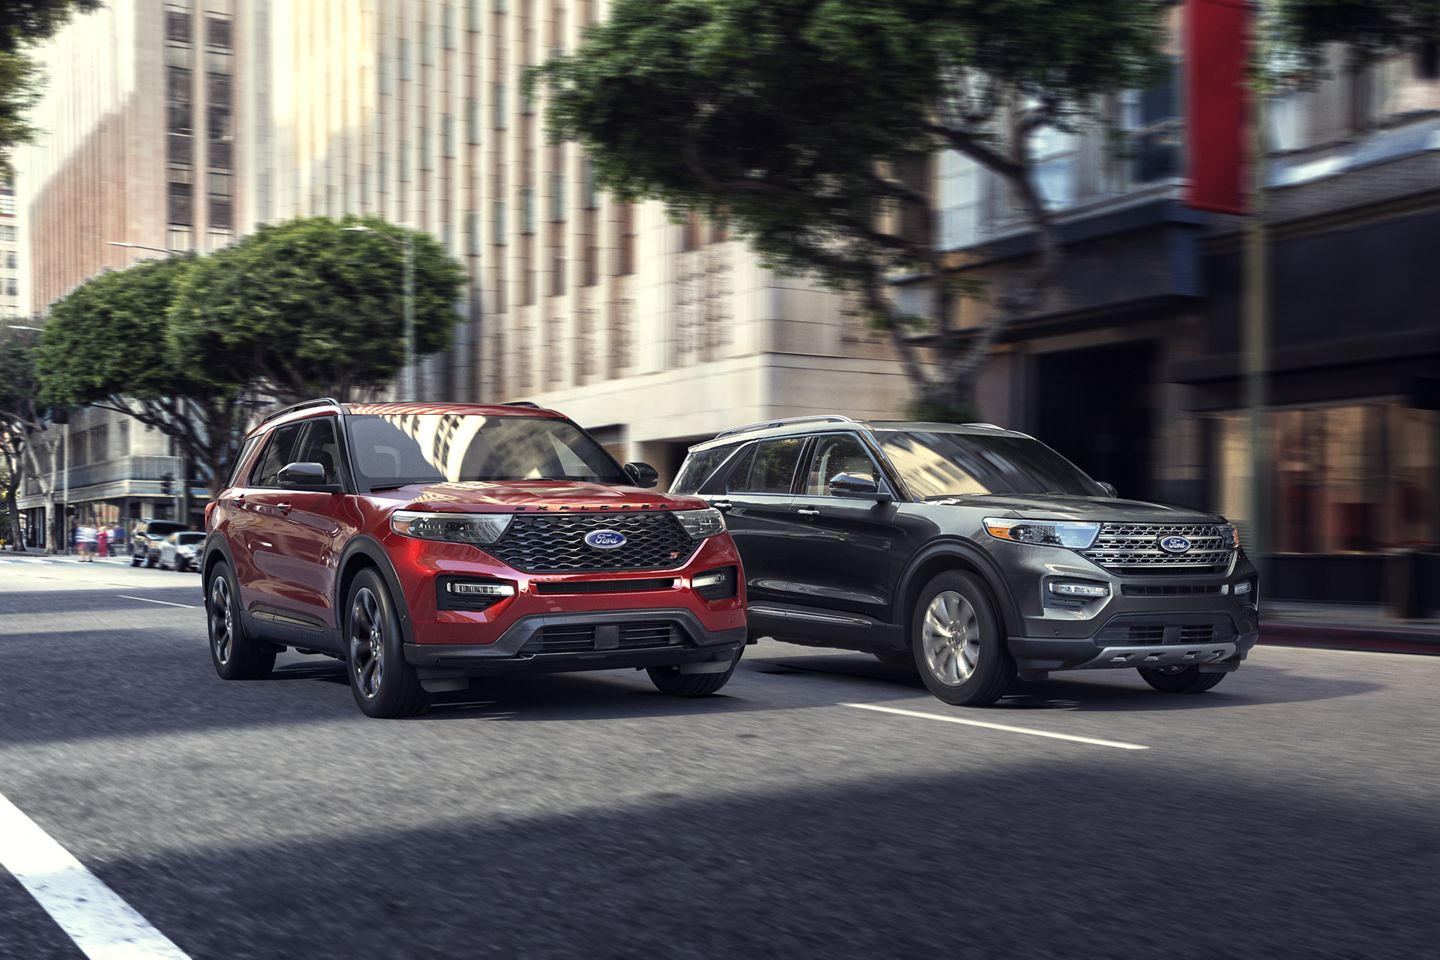 2020 Ford Explorer - New Trims